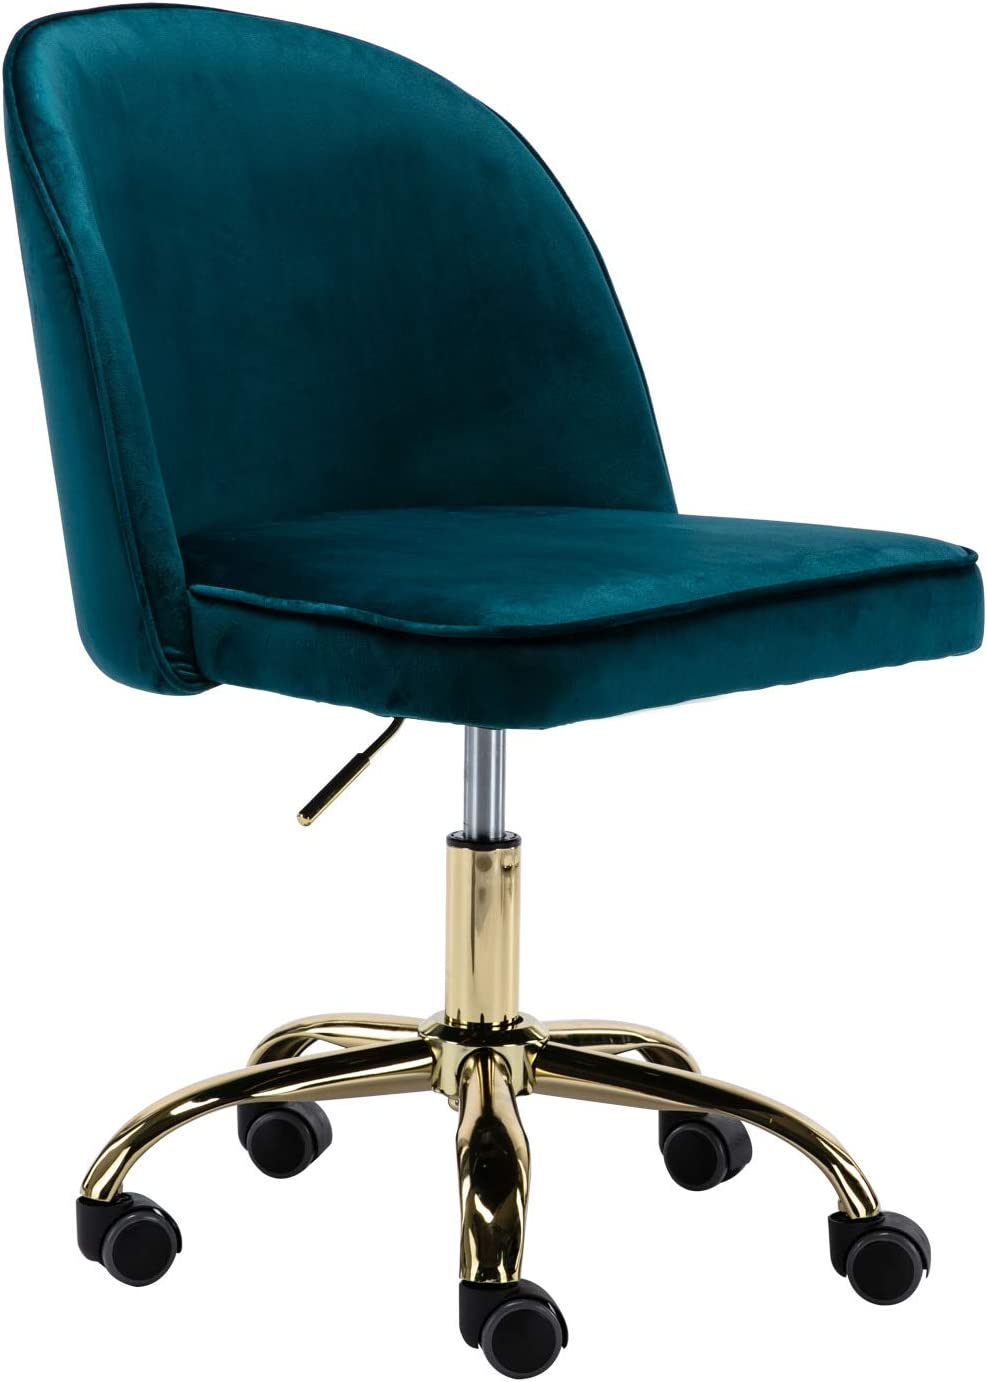 Tufted Task Chair Home Computer Desk Chair DM Furniture Soft Fabric Padded Swivel Chair Adjustable Height with Gold Base,Teal Blue